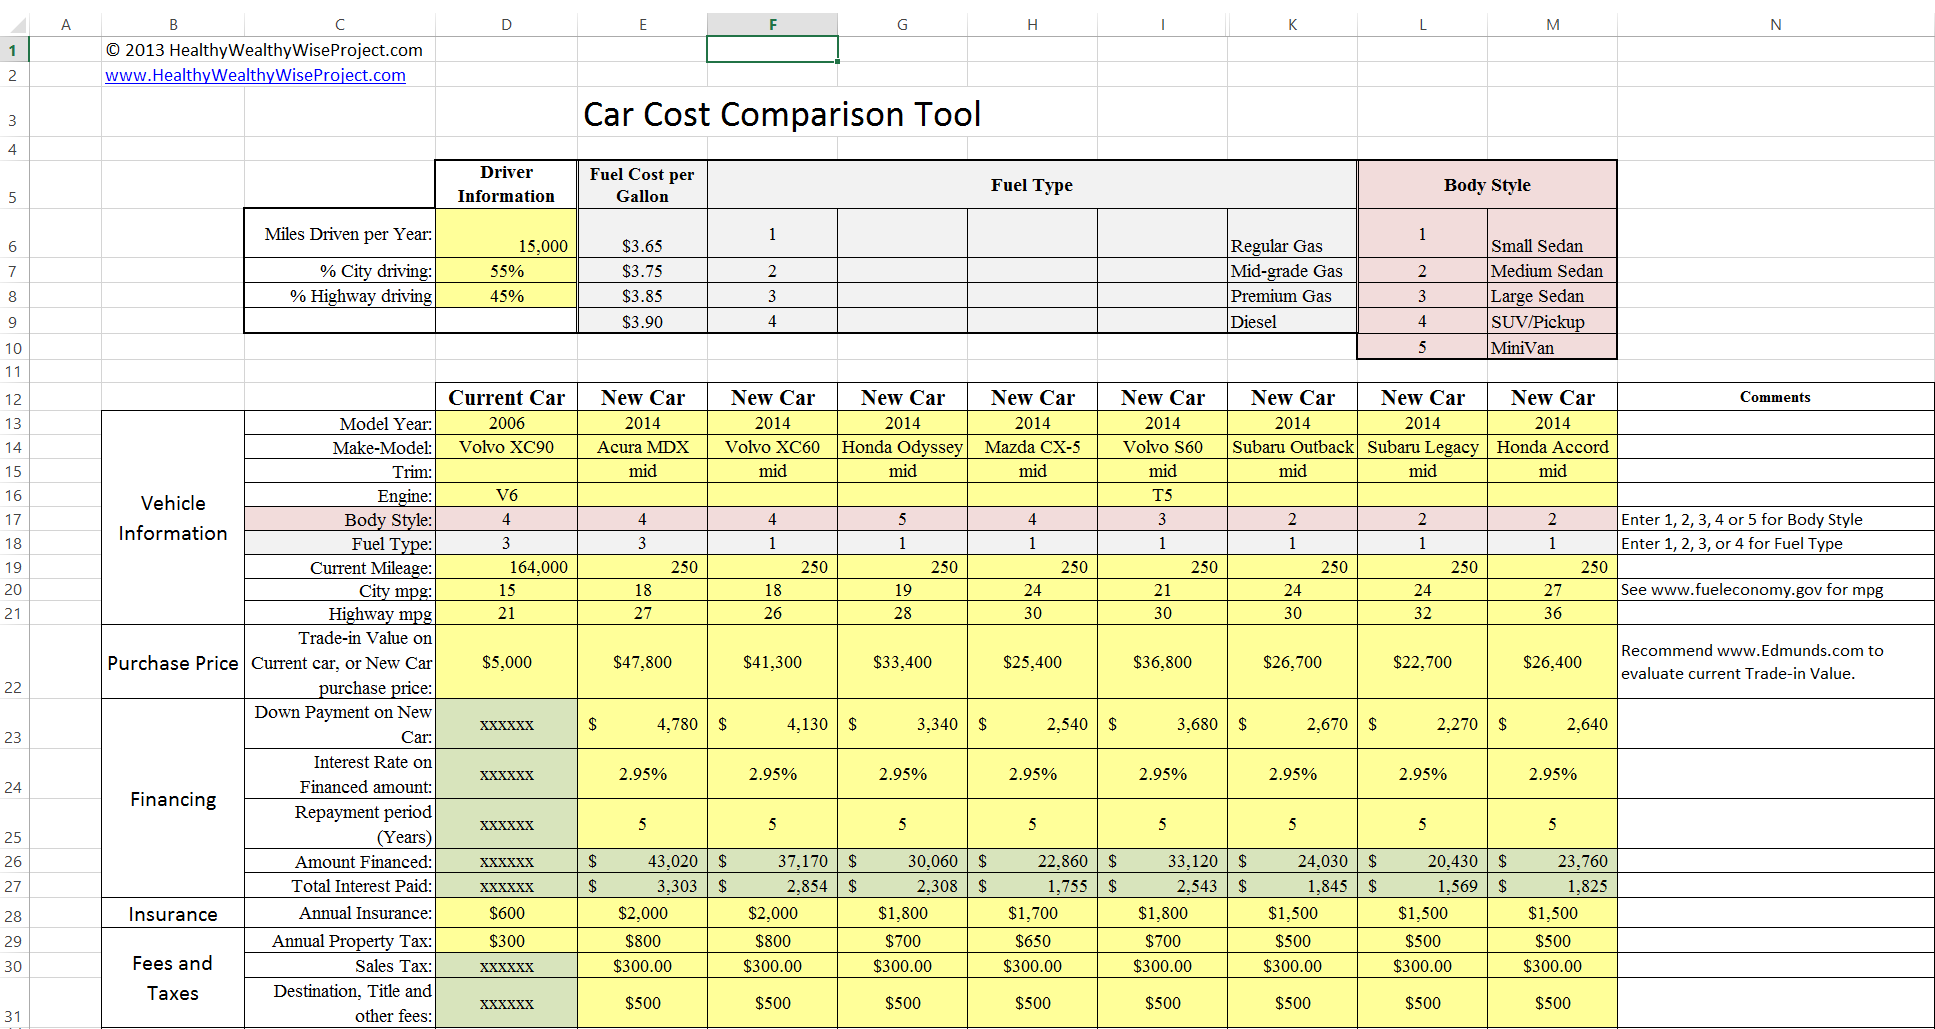 compare 2 excel files for differences